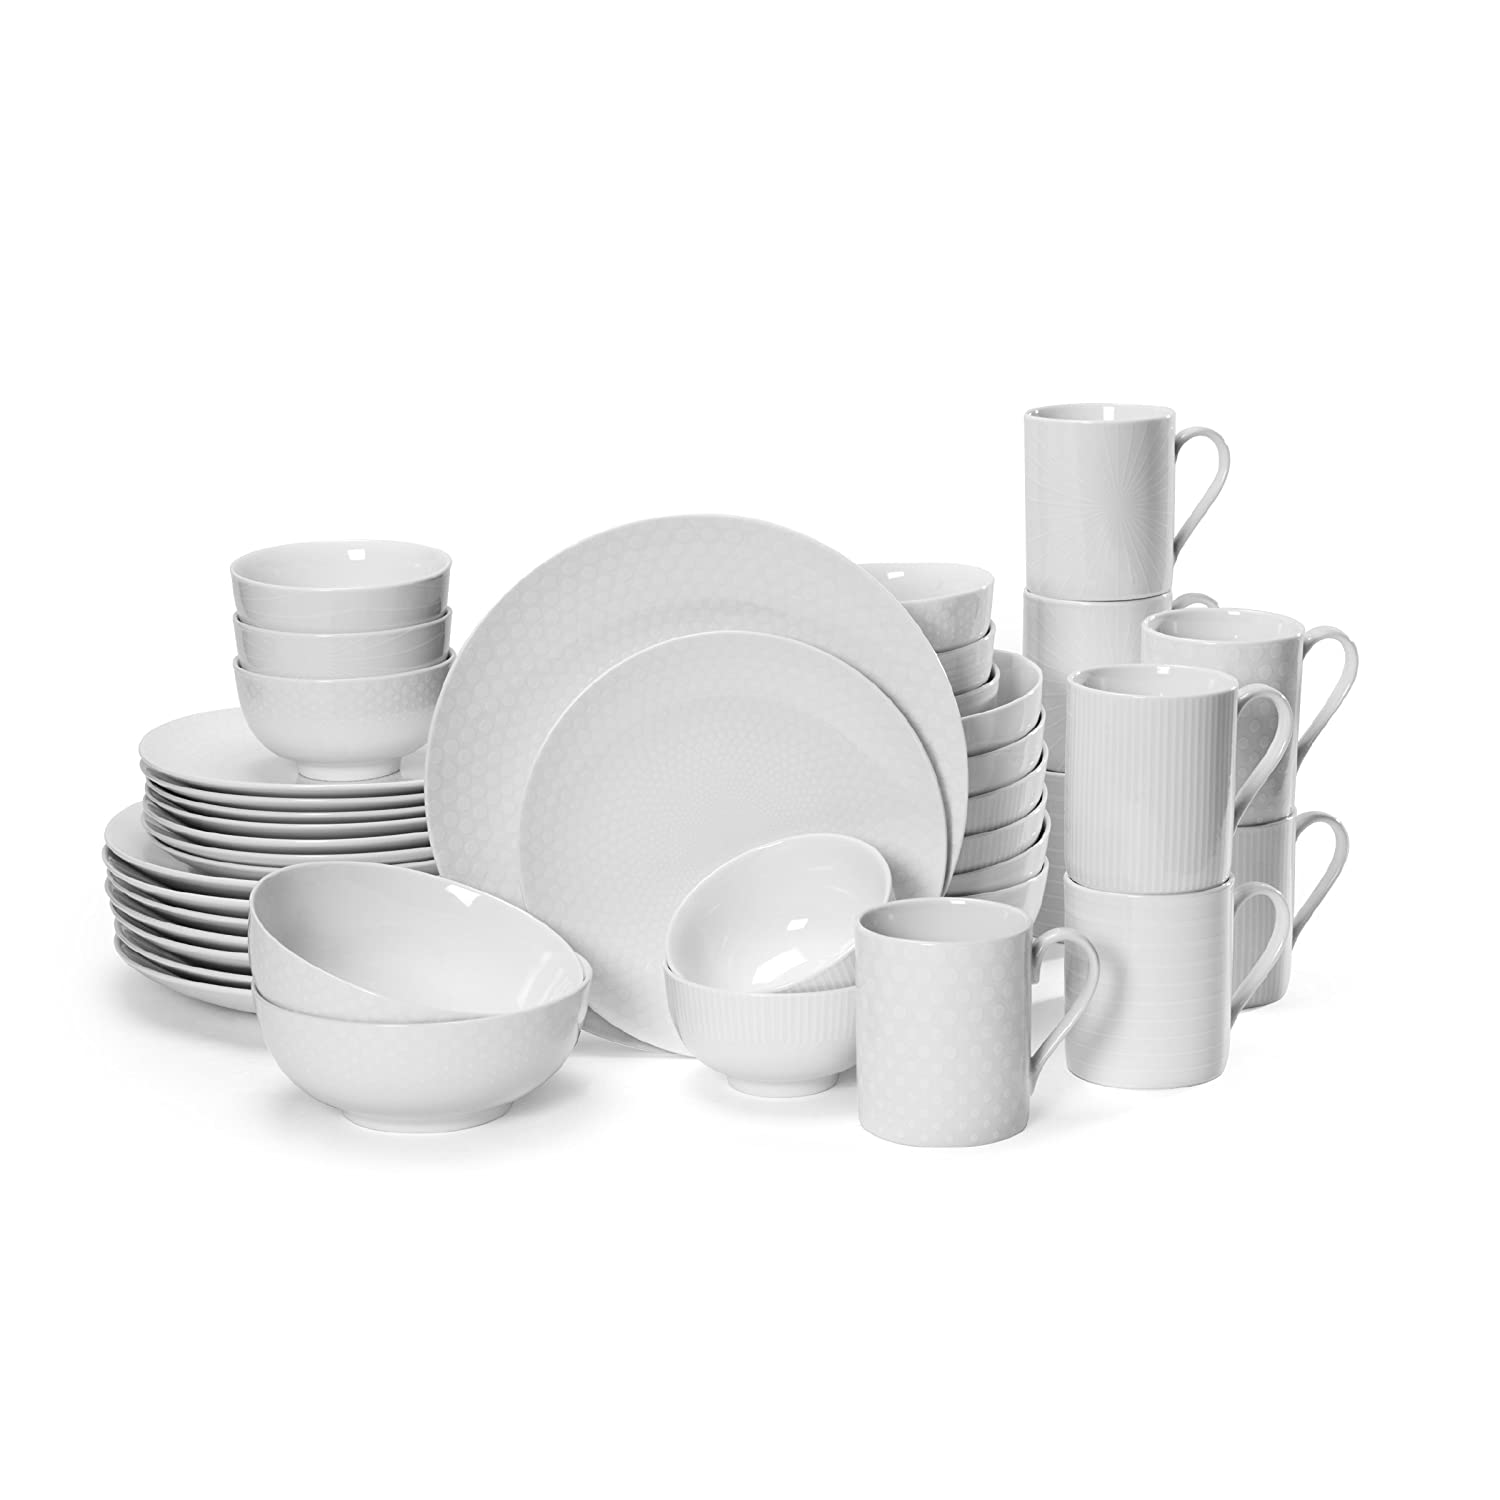 amazoncom mikasa cheers white 40piece cheers dinnerware set service for 8 kitchen u0026 dining - White Dinnerware Sets